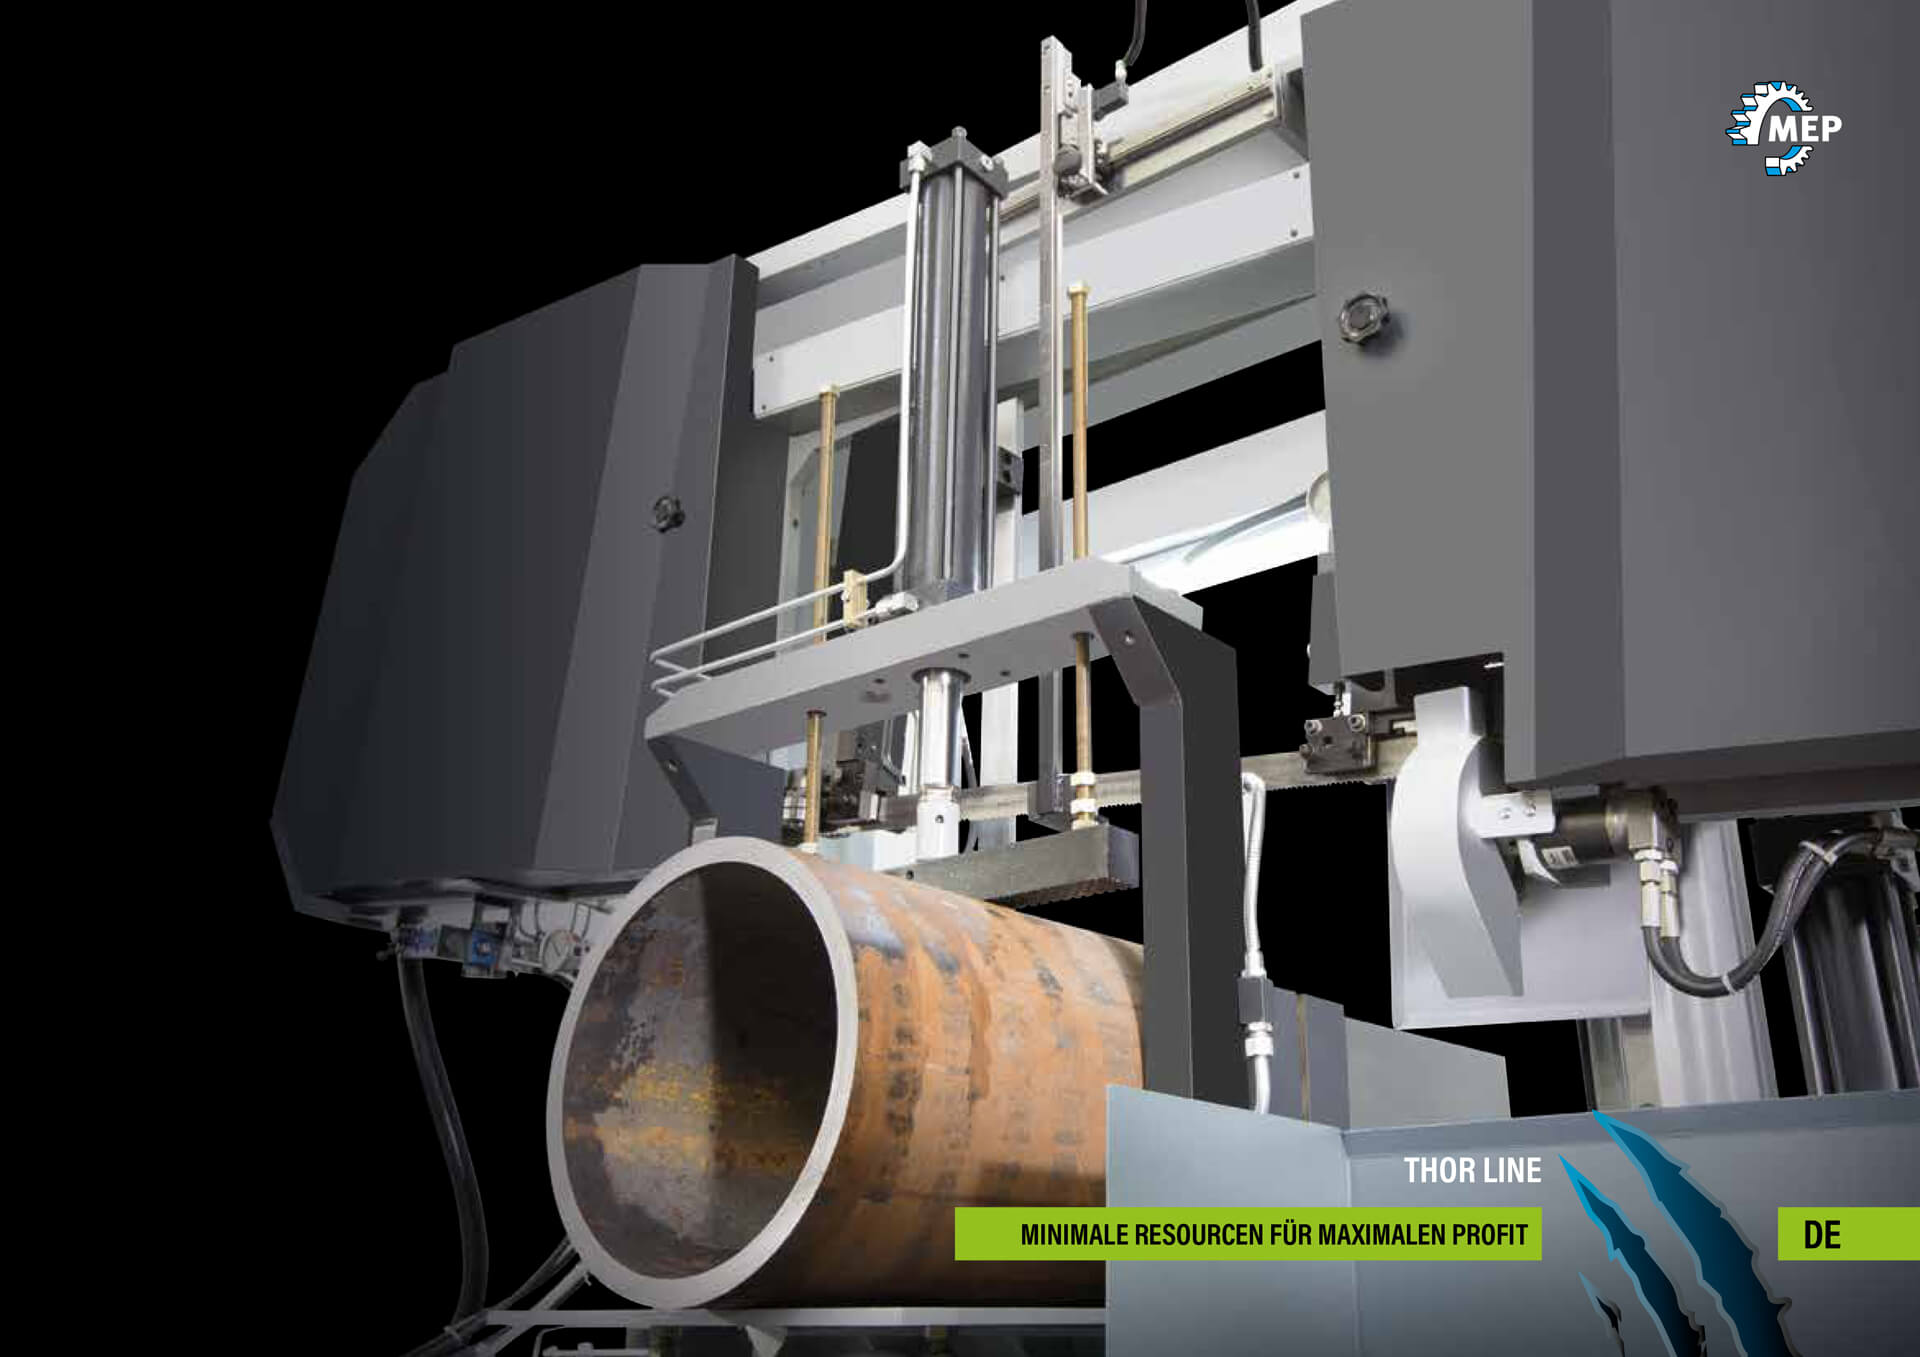 Catalogue THOR 2018 of Mep Segatrici | © MEP S.p.A. - Circular and band sawing machines to cut metals